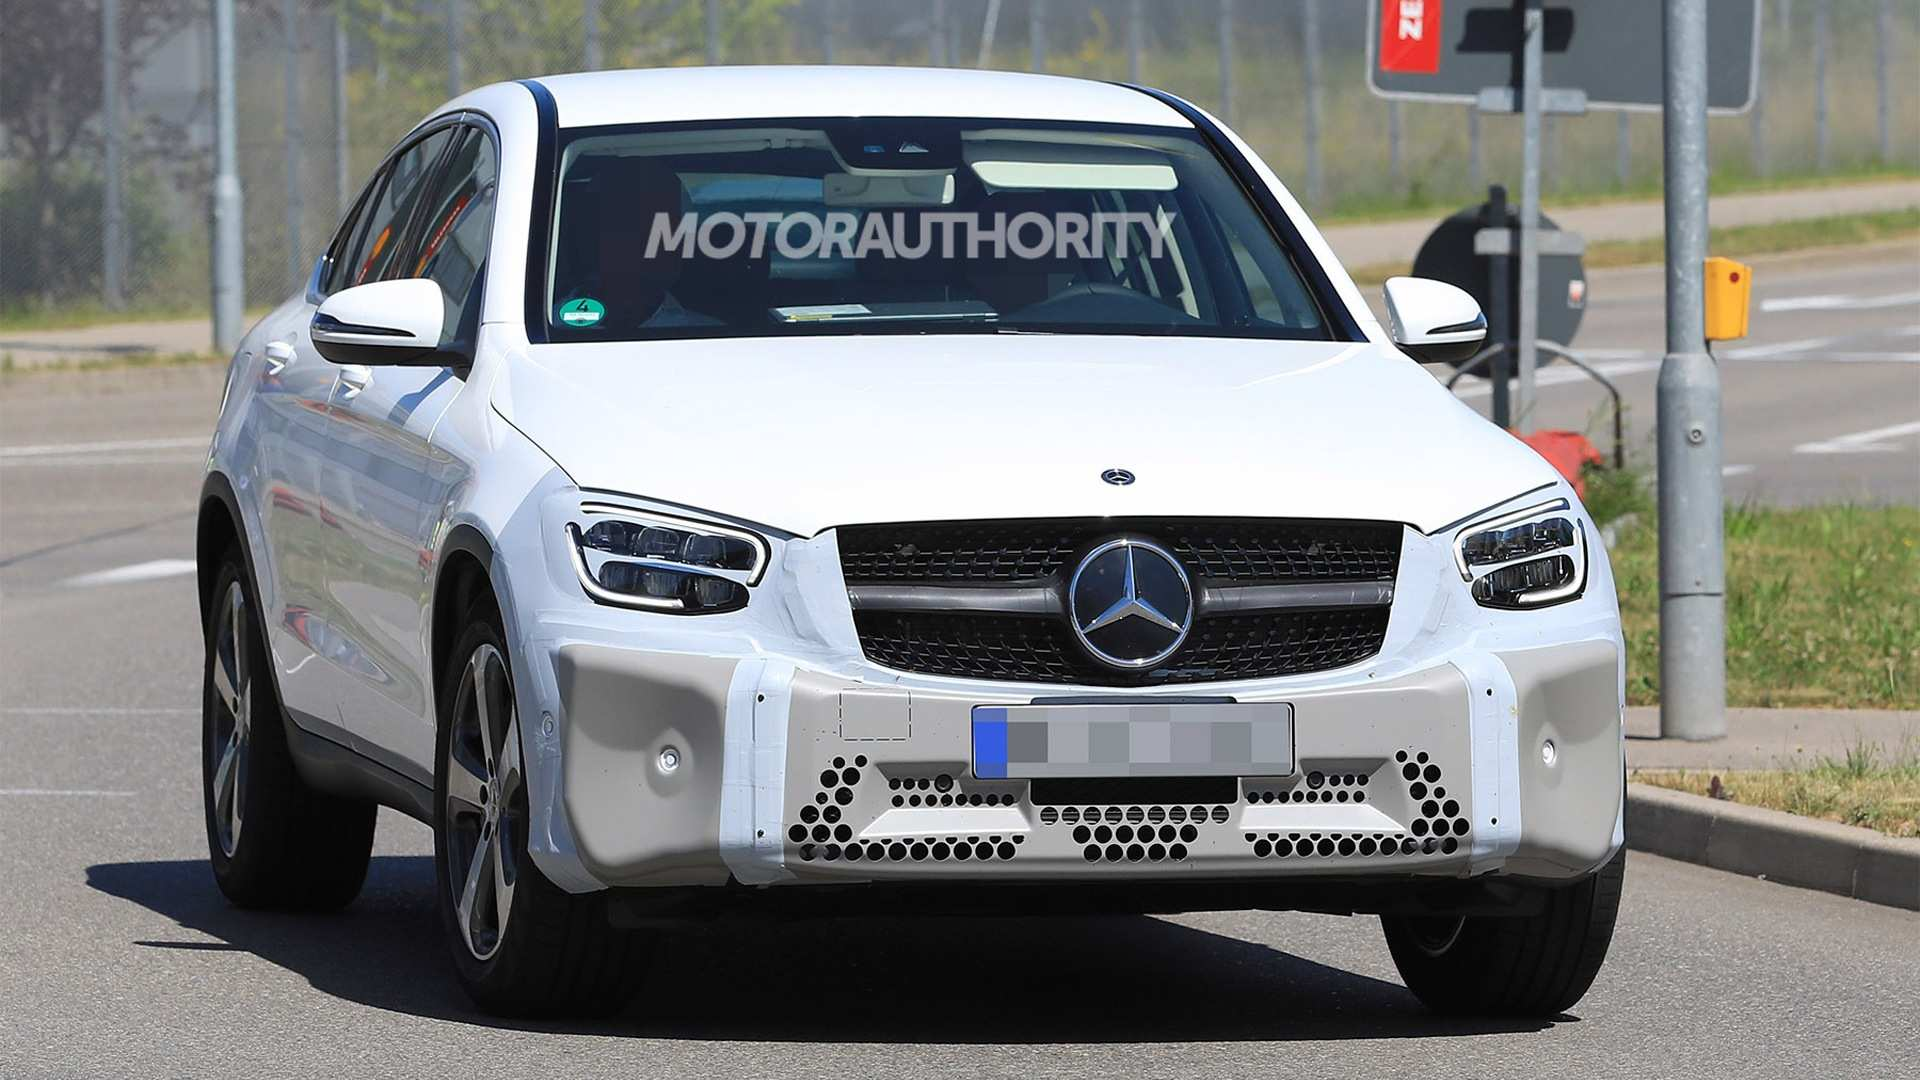 91 Great 2020 Mercedes Glc 2020 Pictures for 2020 Mercedes Glc 2020